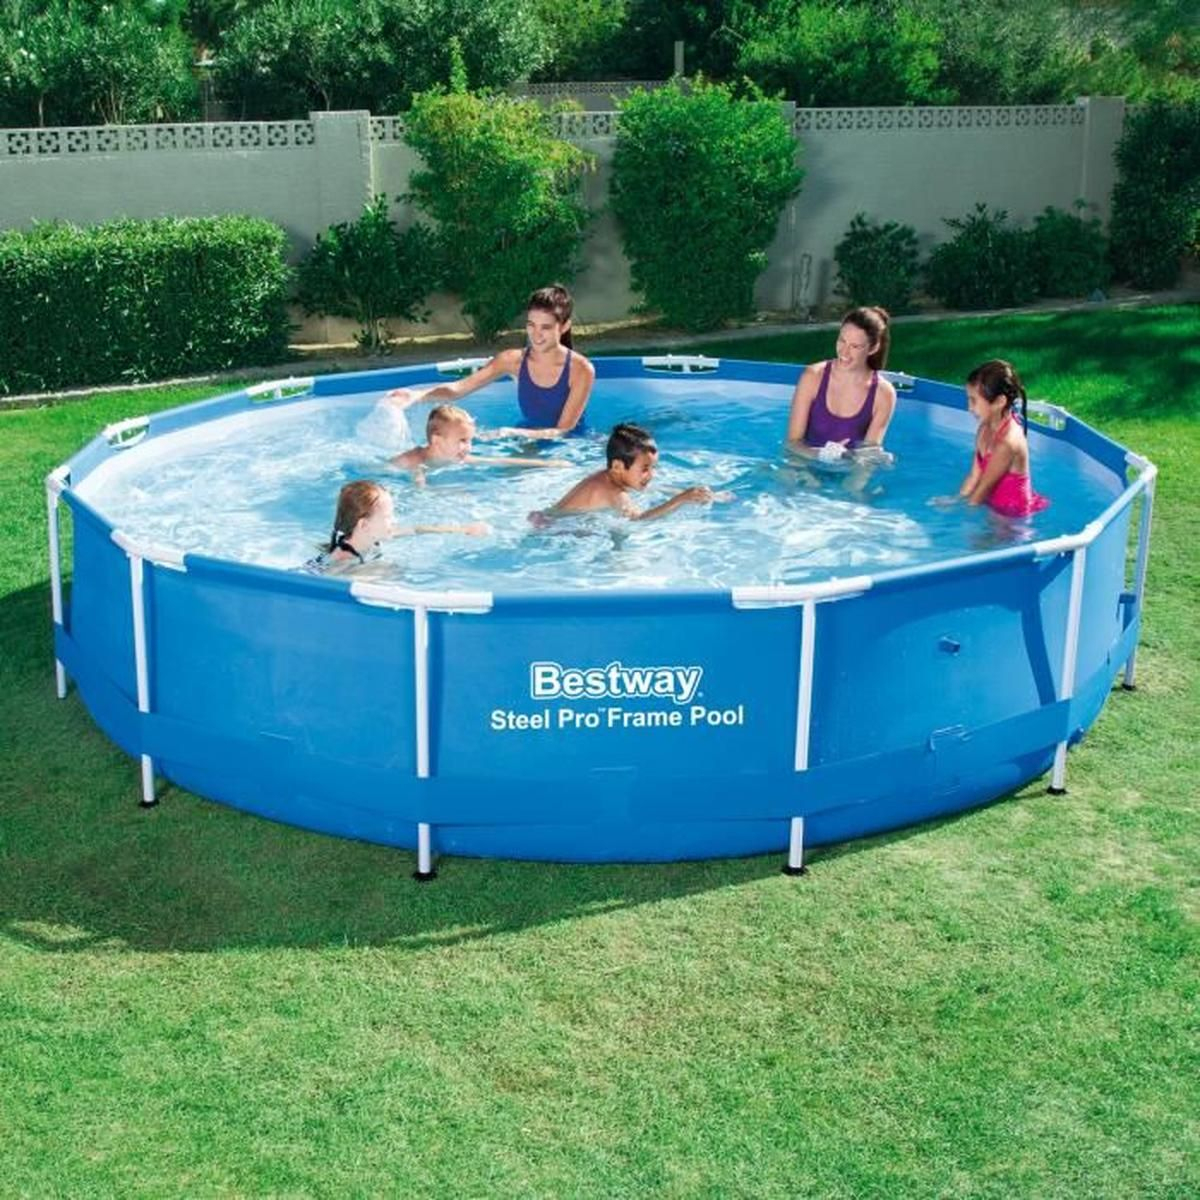 Piscine Tubulaire Ronde Pvc D.3.66M Steel Frame Pools ... avec Piscine Tubulaire 3.66